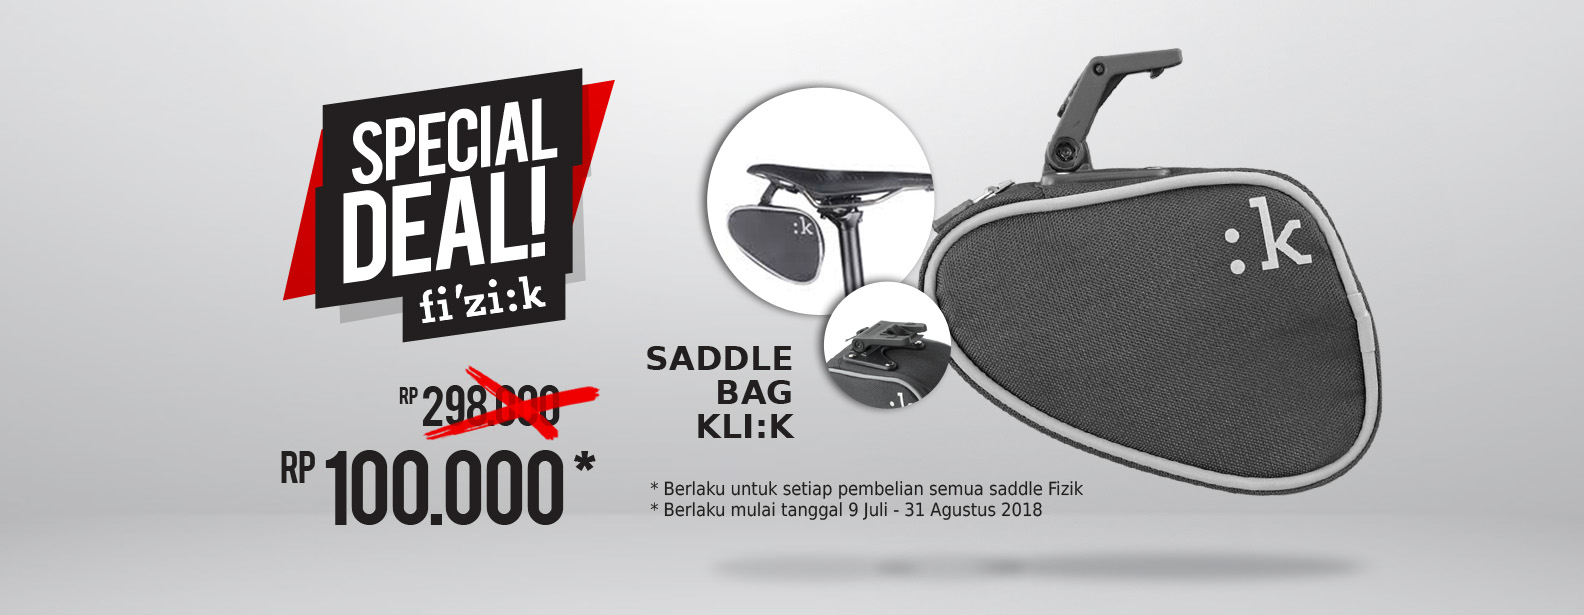 Promo PWP Fizik Saddle